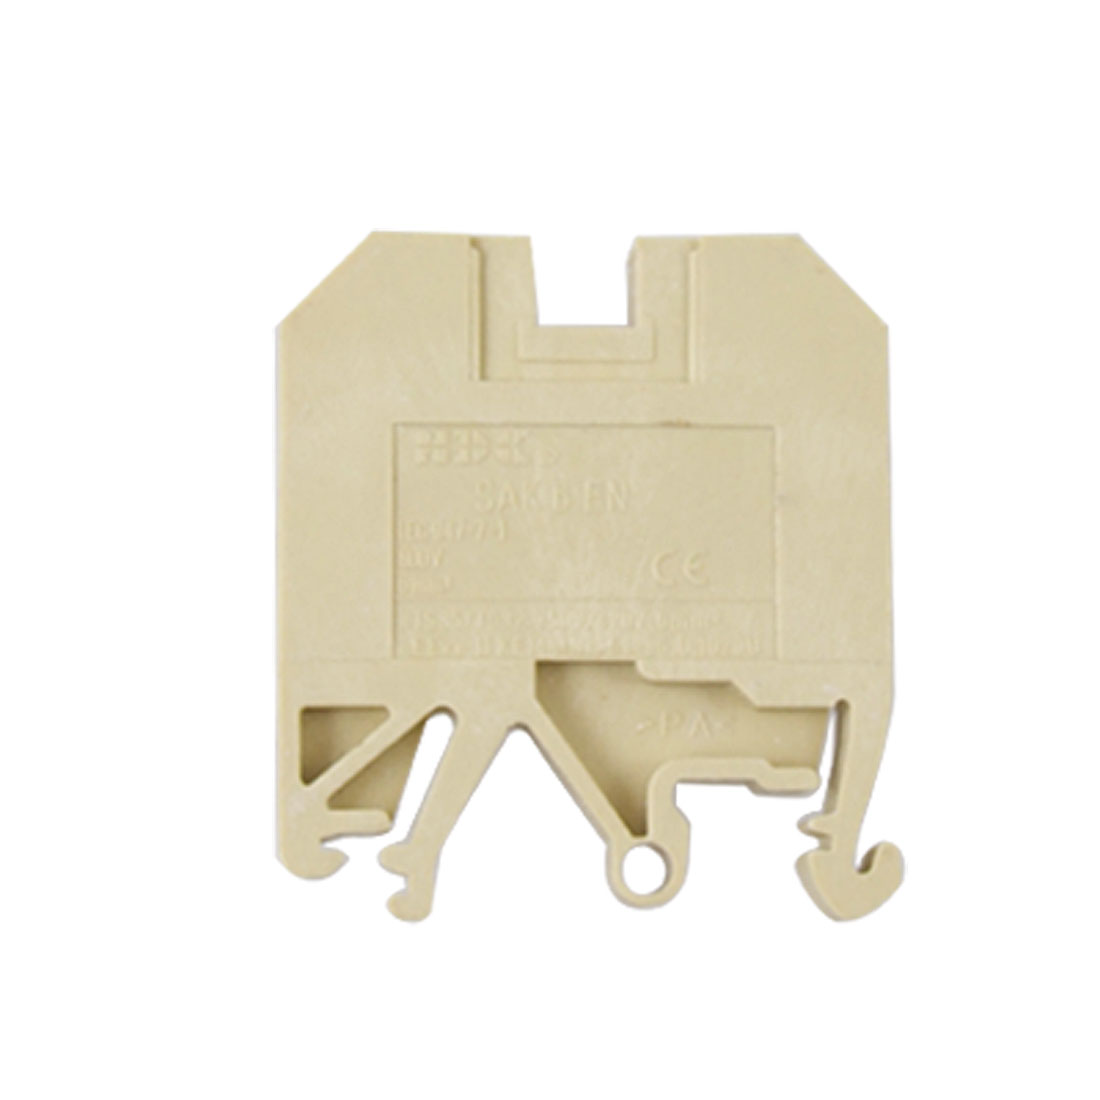 SAK-6N IEC60947-7-1 Conductor Terminal Block Connector